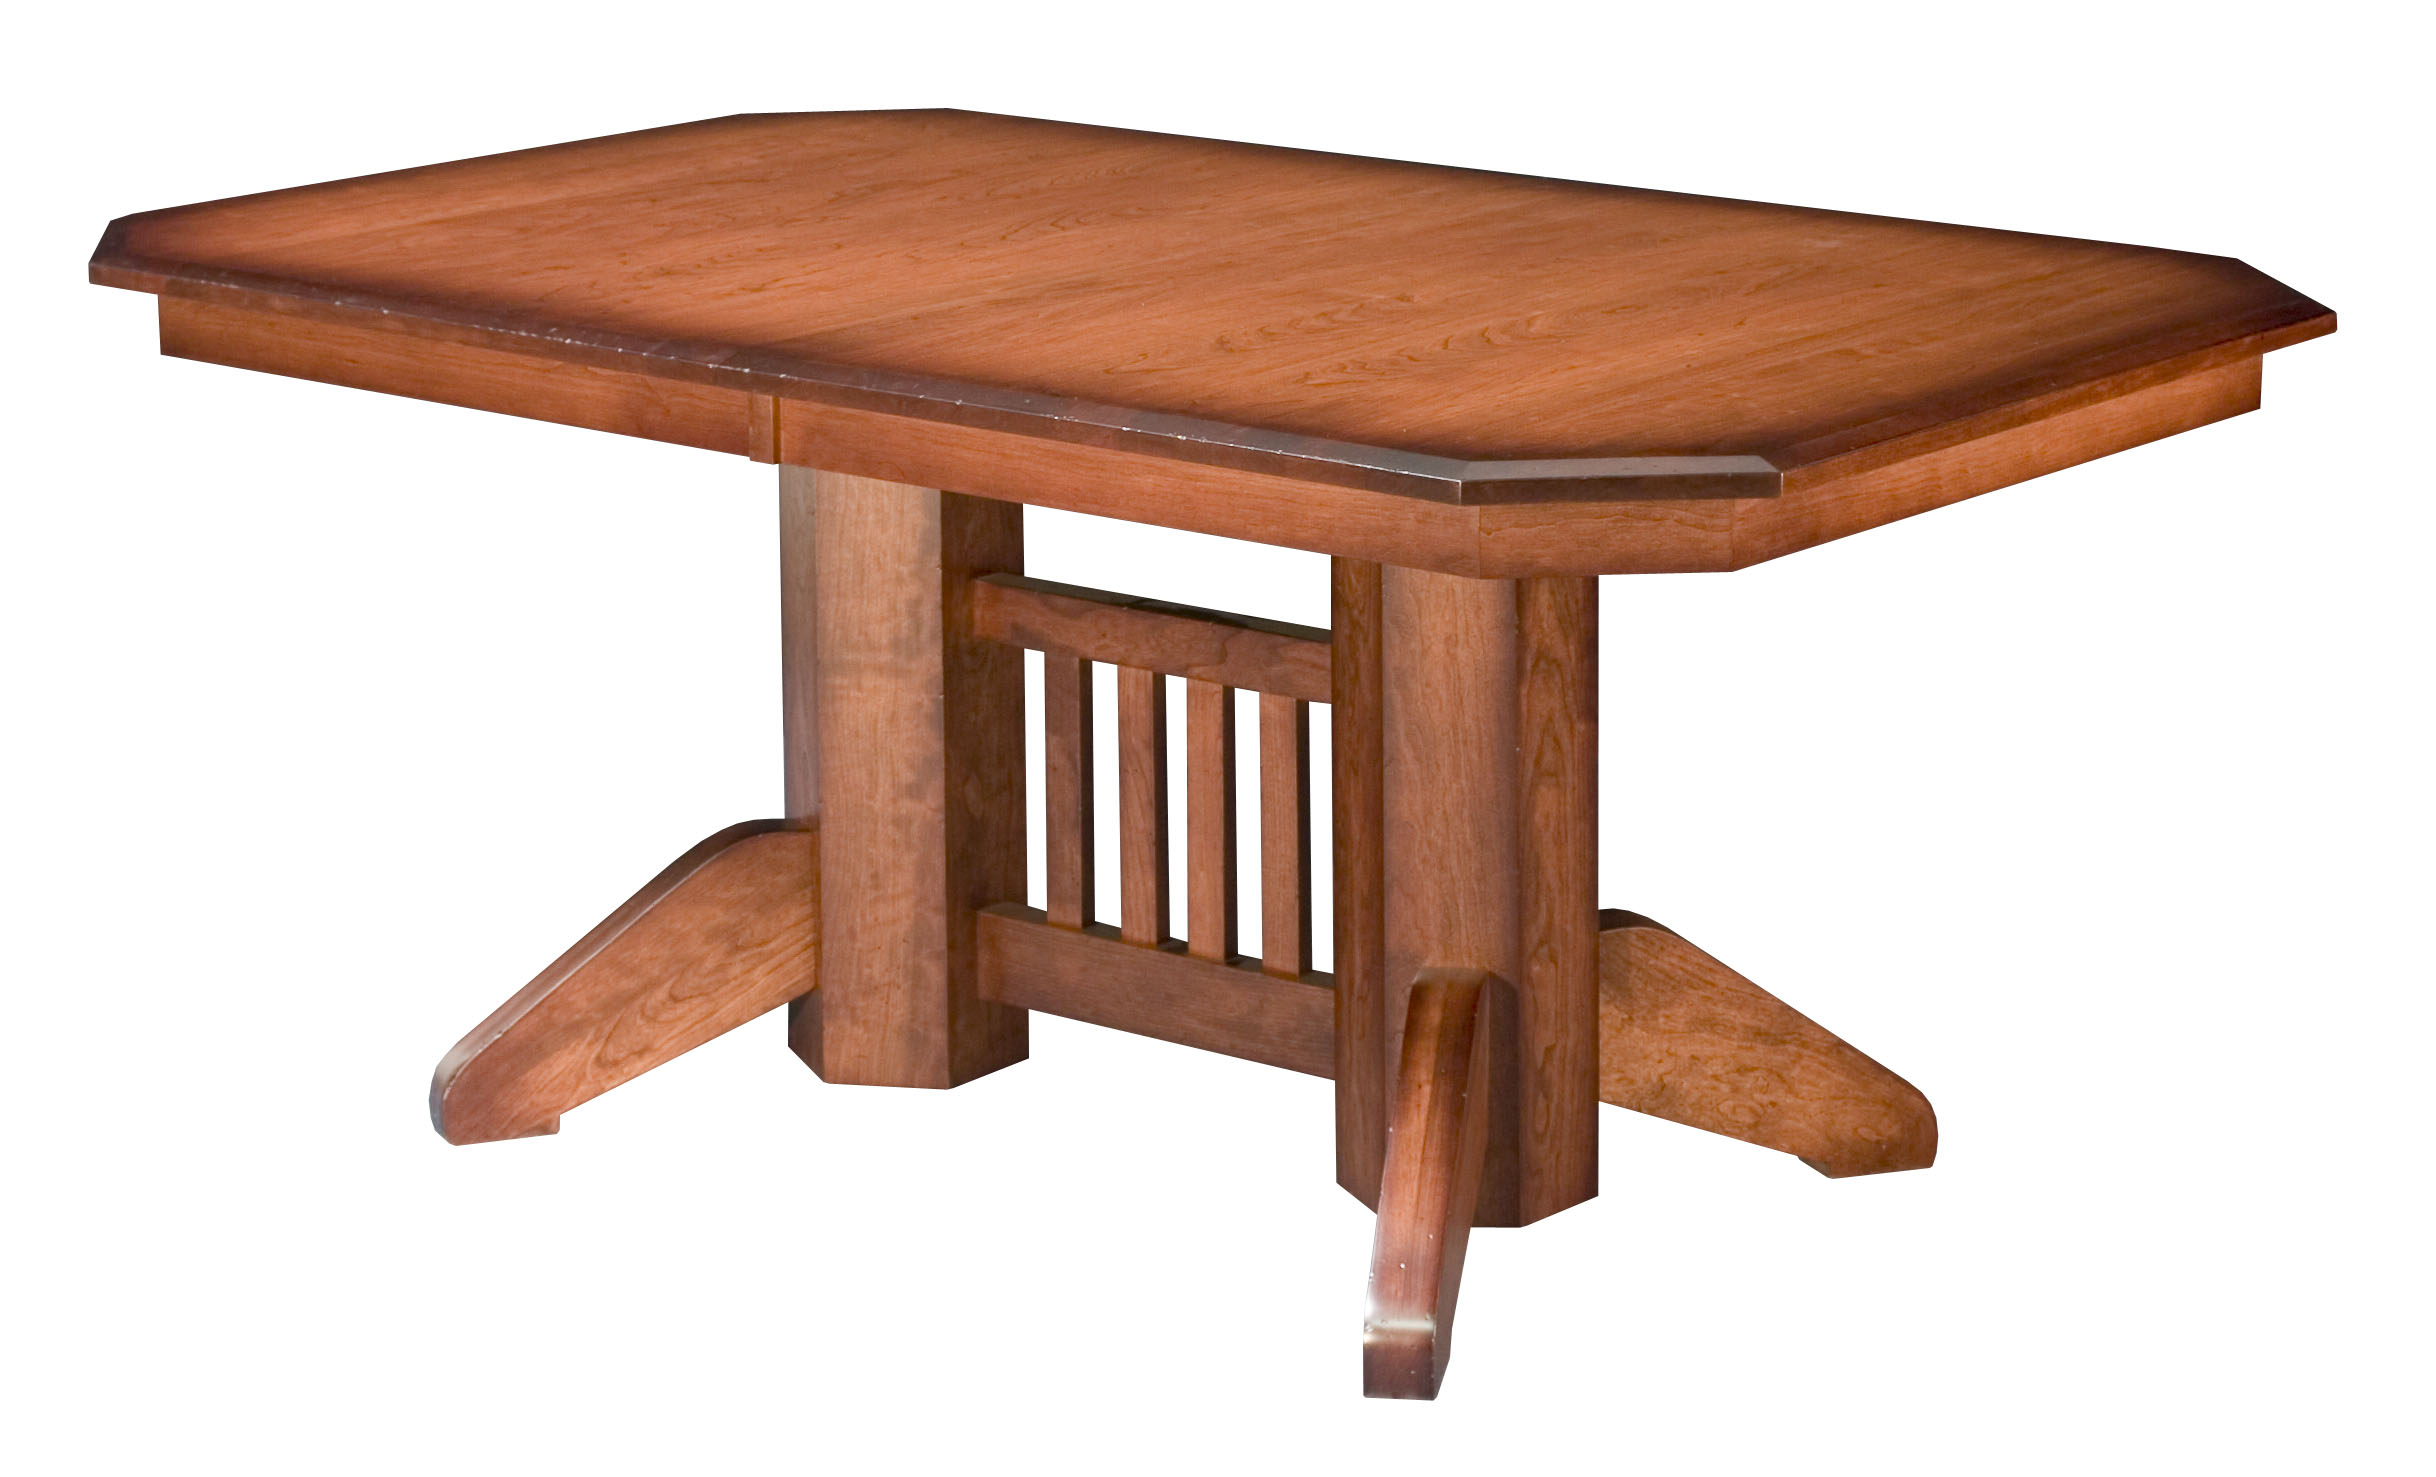 New online furniture store offers finely crafted amish for Mission style dining table